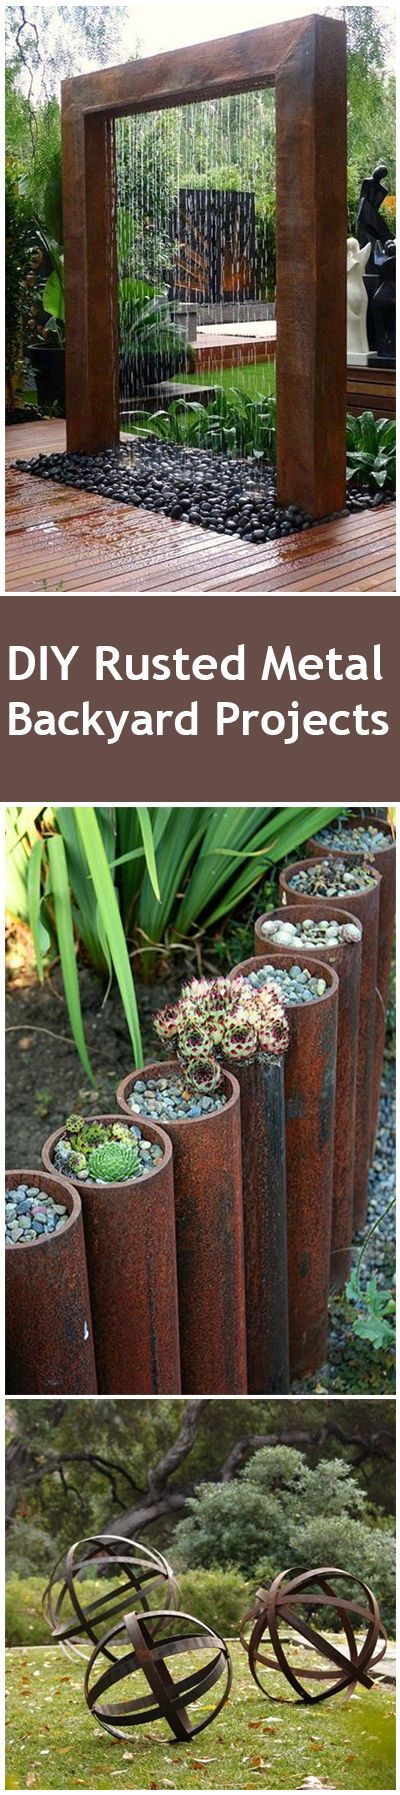 Rusted Metal Outdoor DIY Projects and Landscape Ideas